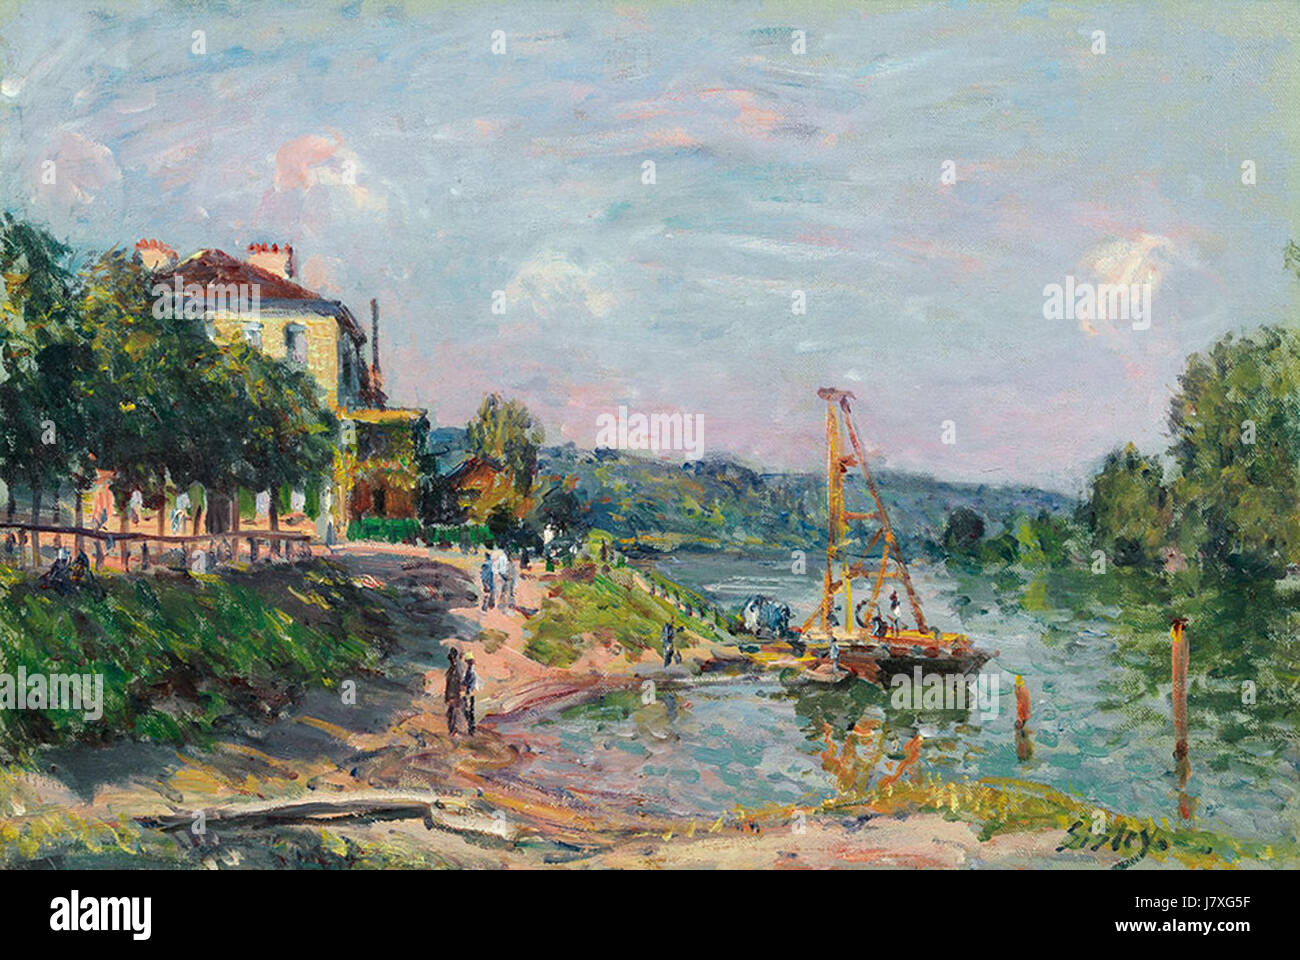 'Le Petit Bougival' by Alfred Sisley, 1874 - Stock Image